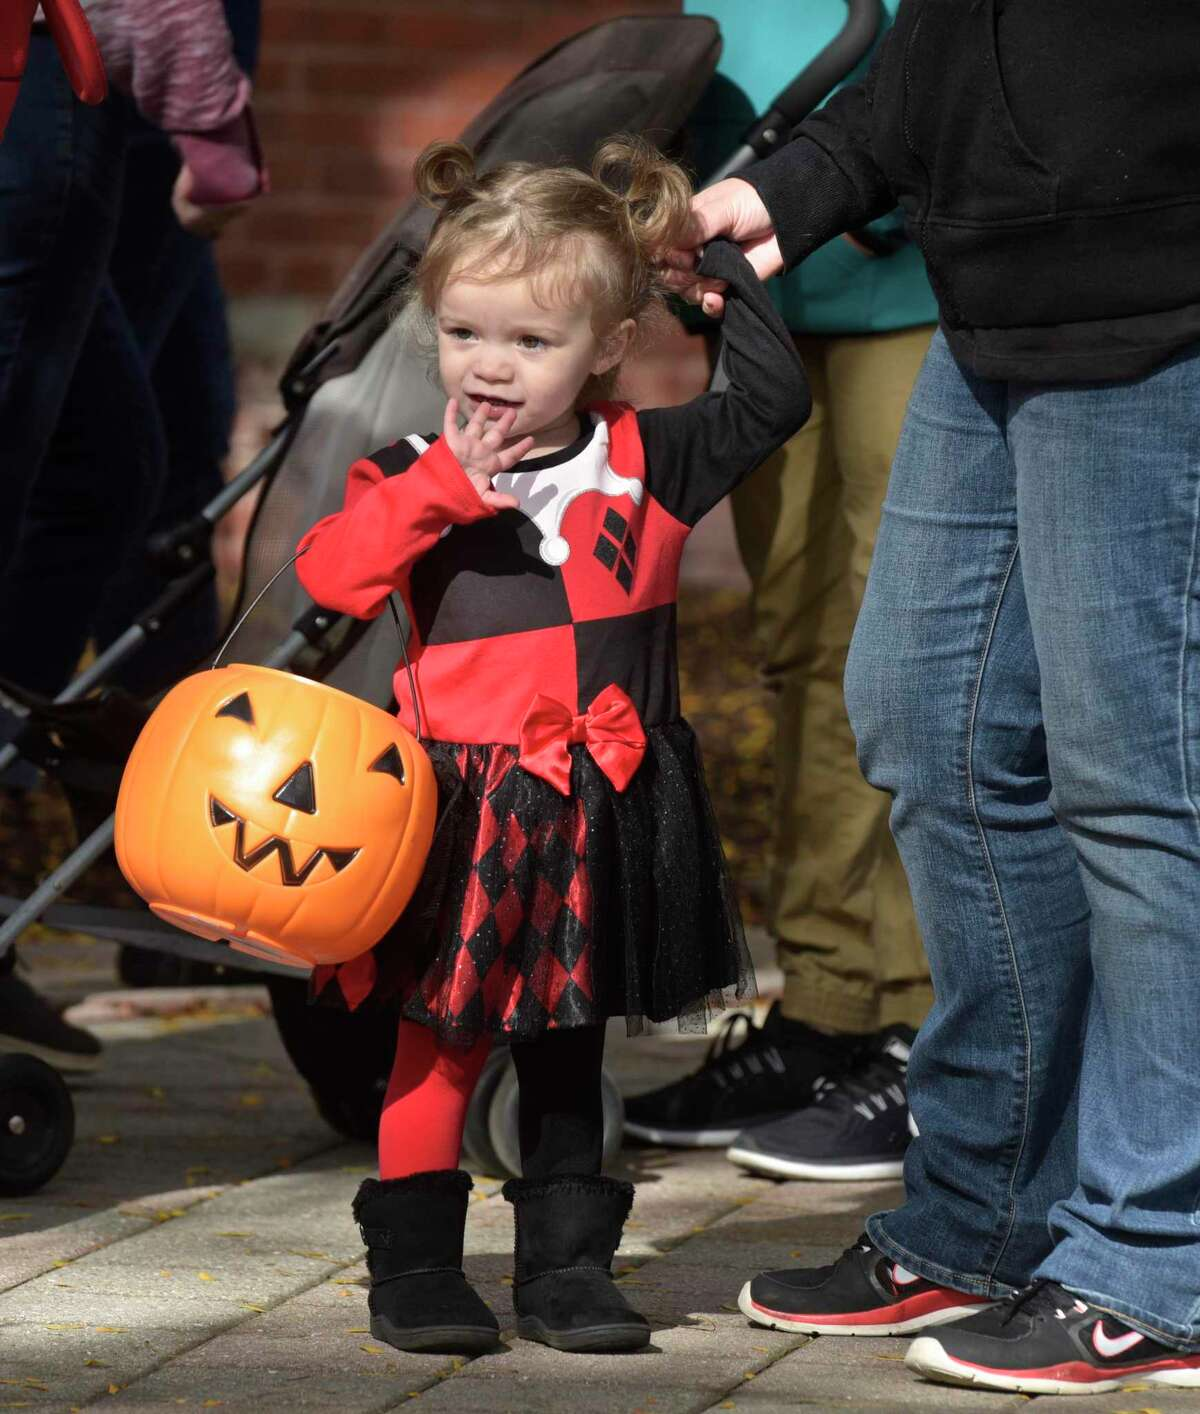 Fiona Hoffan , of Danbury, waits in line with her mother at the 25th Halloween on the Green, sponsored by the Kiwanis of Danbury, Danbury Jaycees and CityCenter Danbury. Saturday, October 29, 2017, in Danbury, Conn. Hoffan is dressed as baby Harley Quinn. The city will host Halloween on the Green on Oct. 30, 2021.